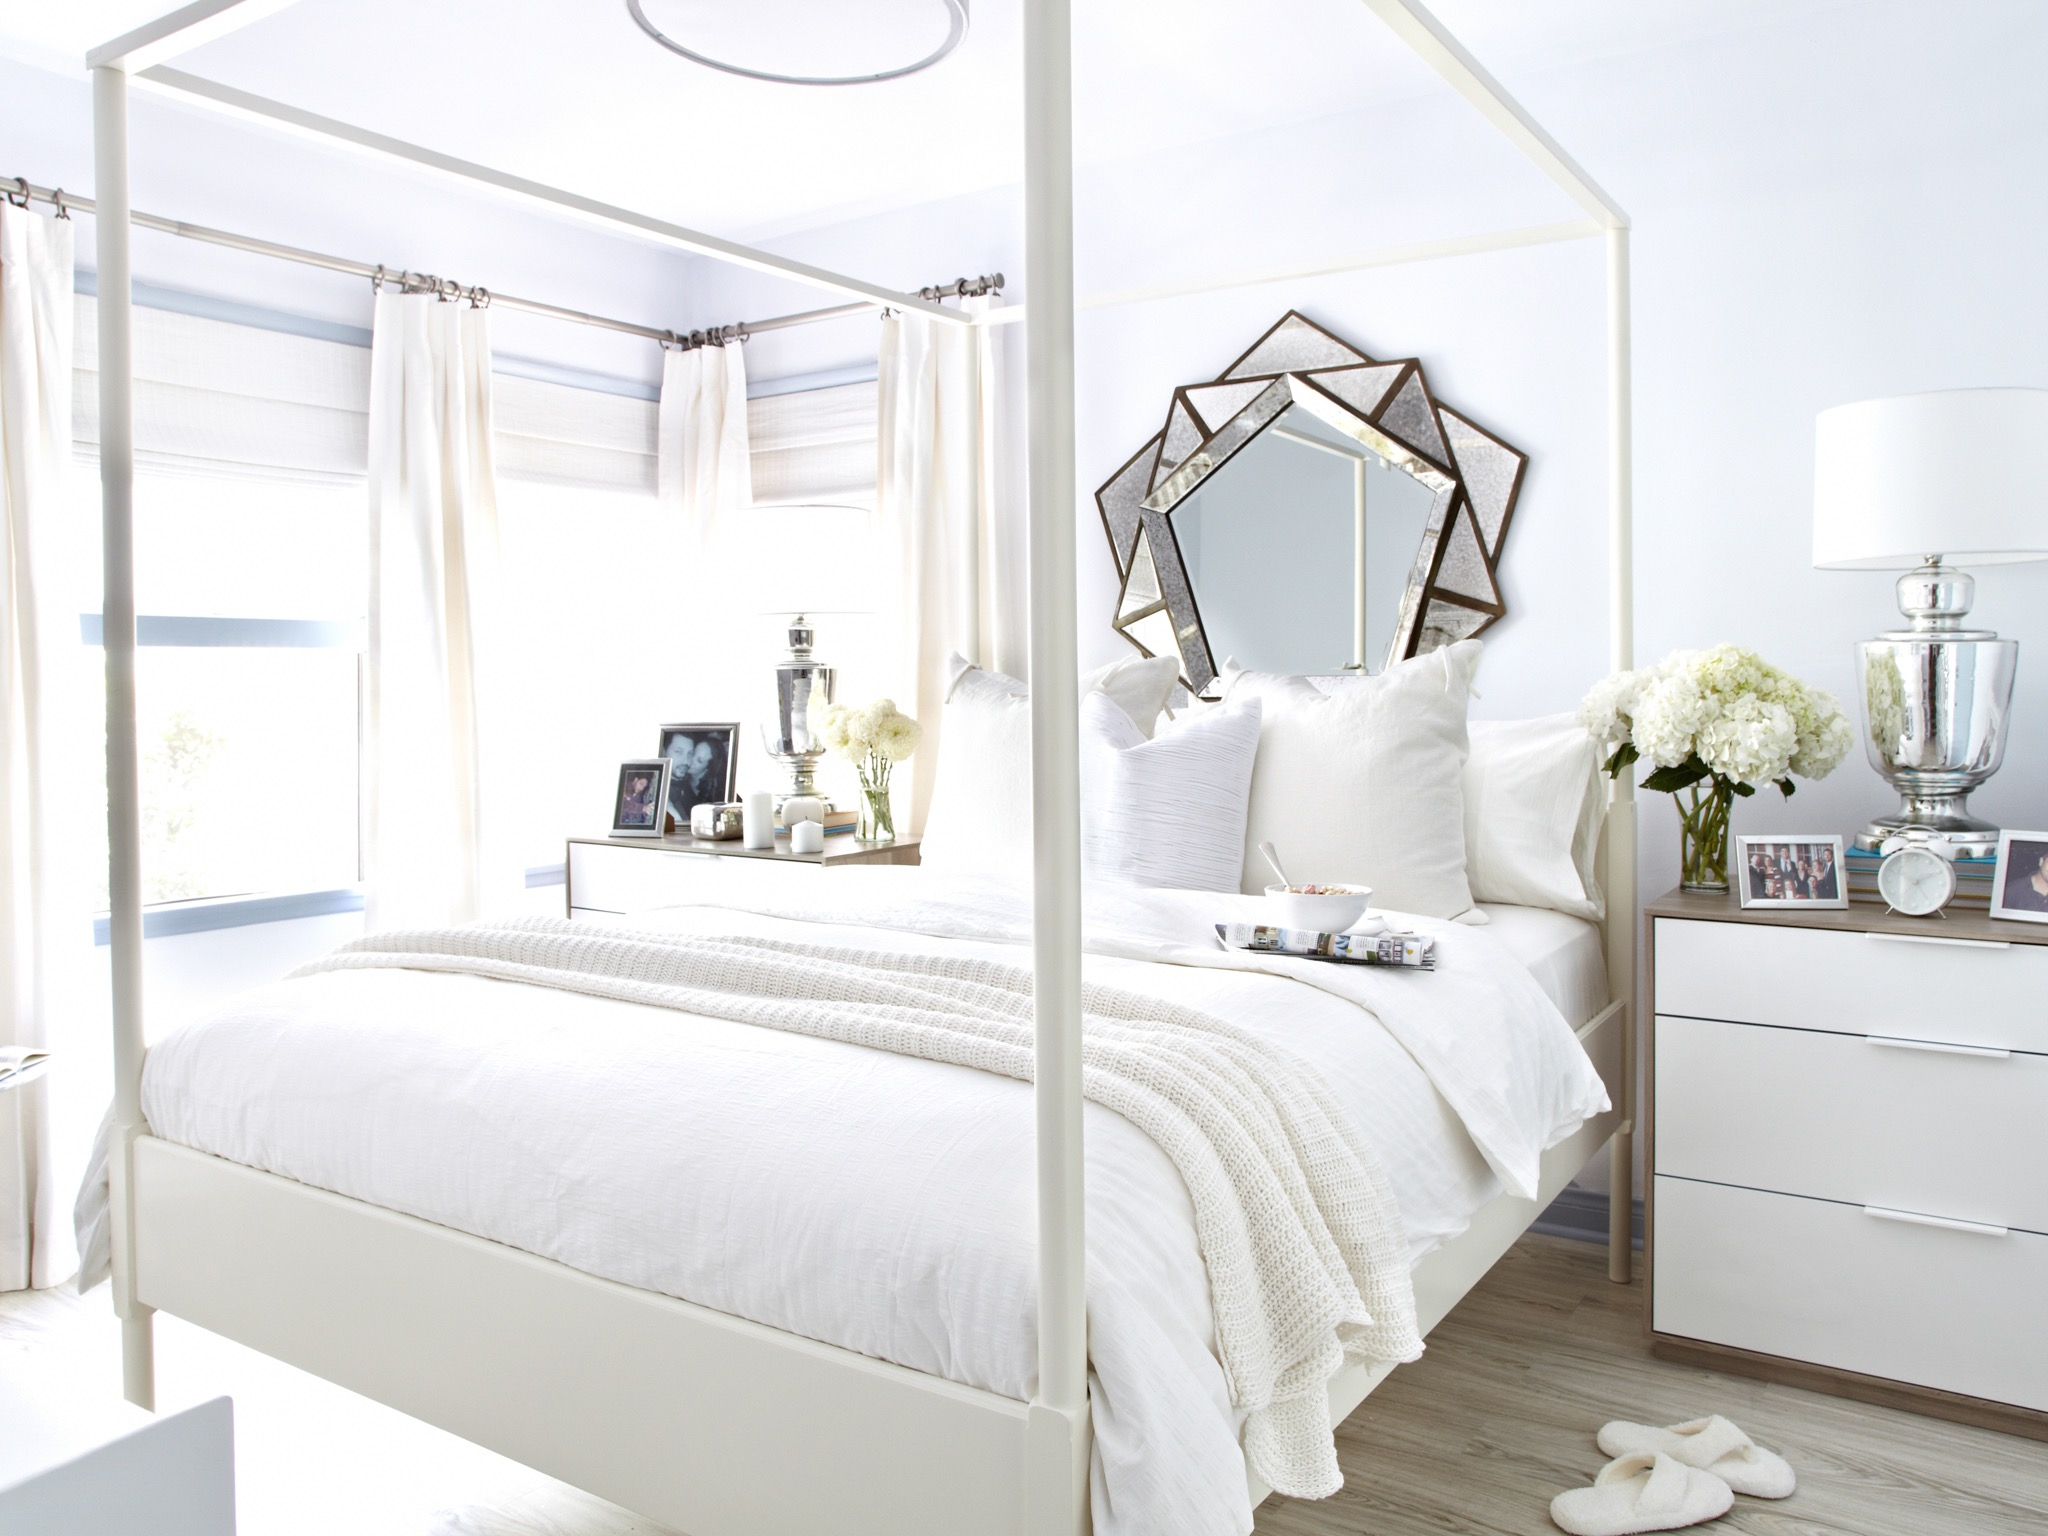 Geometric Mirror Decor For White Bedroom Interior (View 7 of 20)